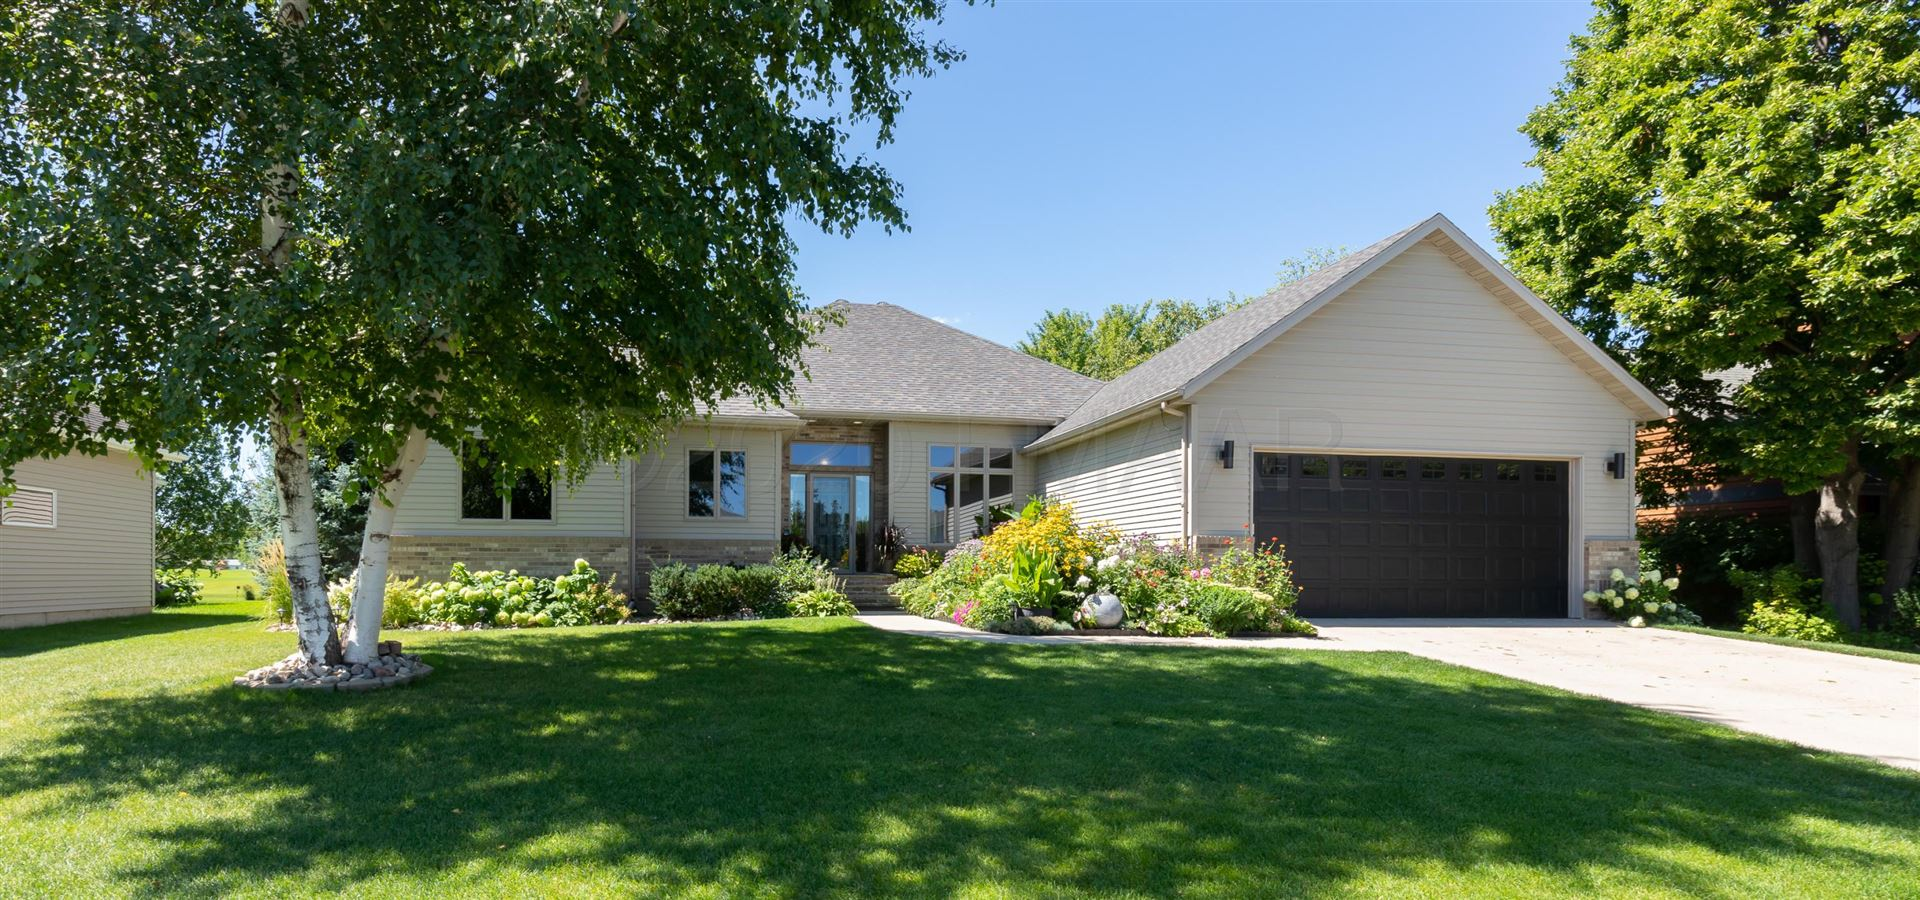 431 CLEARVIEW Court, Moorhead, MN 56560 - #: 20-4646